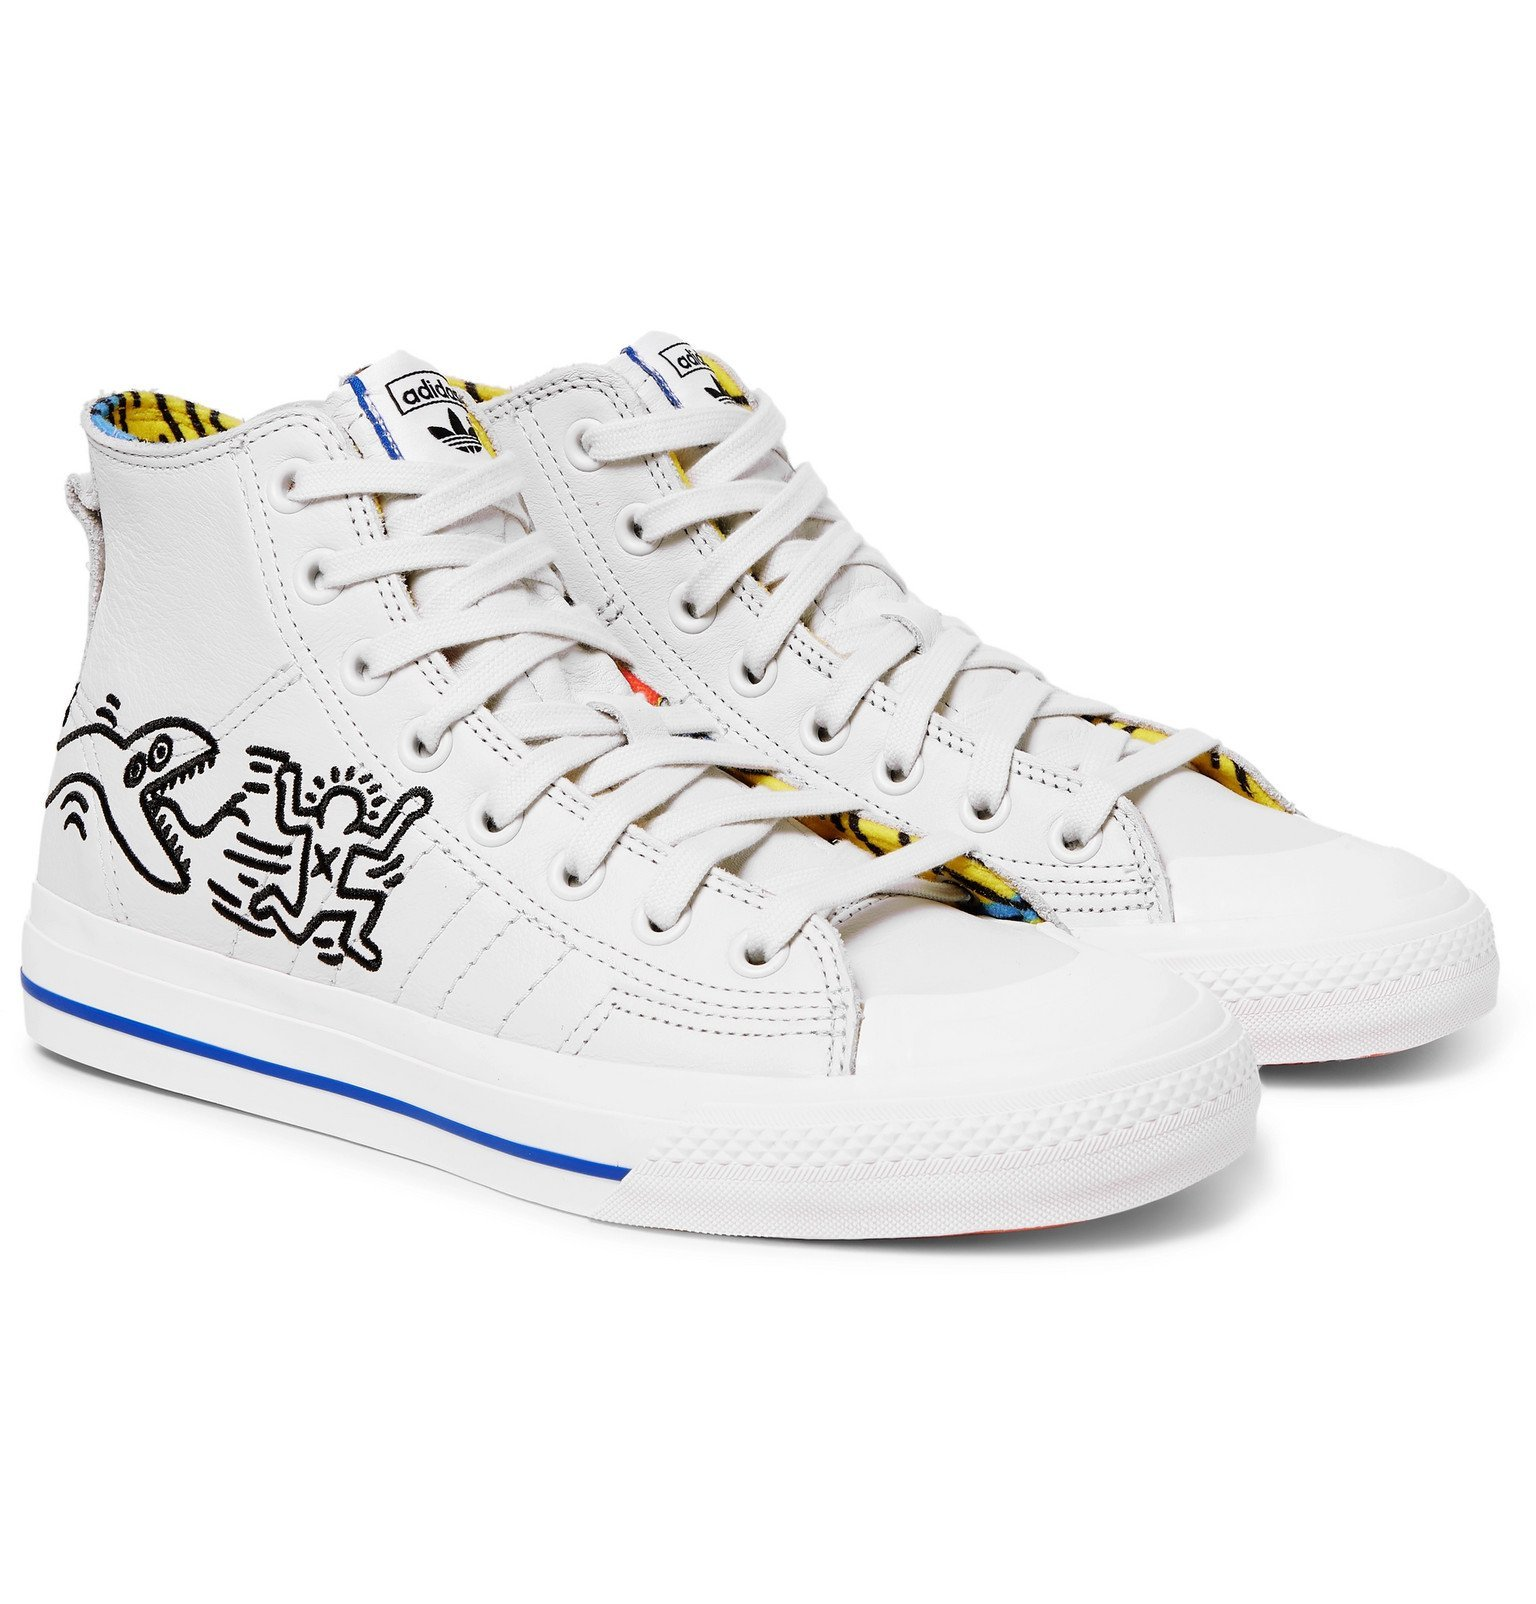 adidas Originals - Keith Haring Nizza Embroidered Leather High-Top Sneakers - Off-white